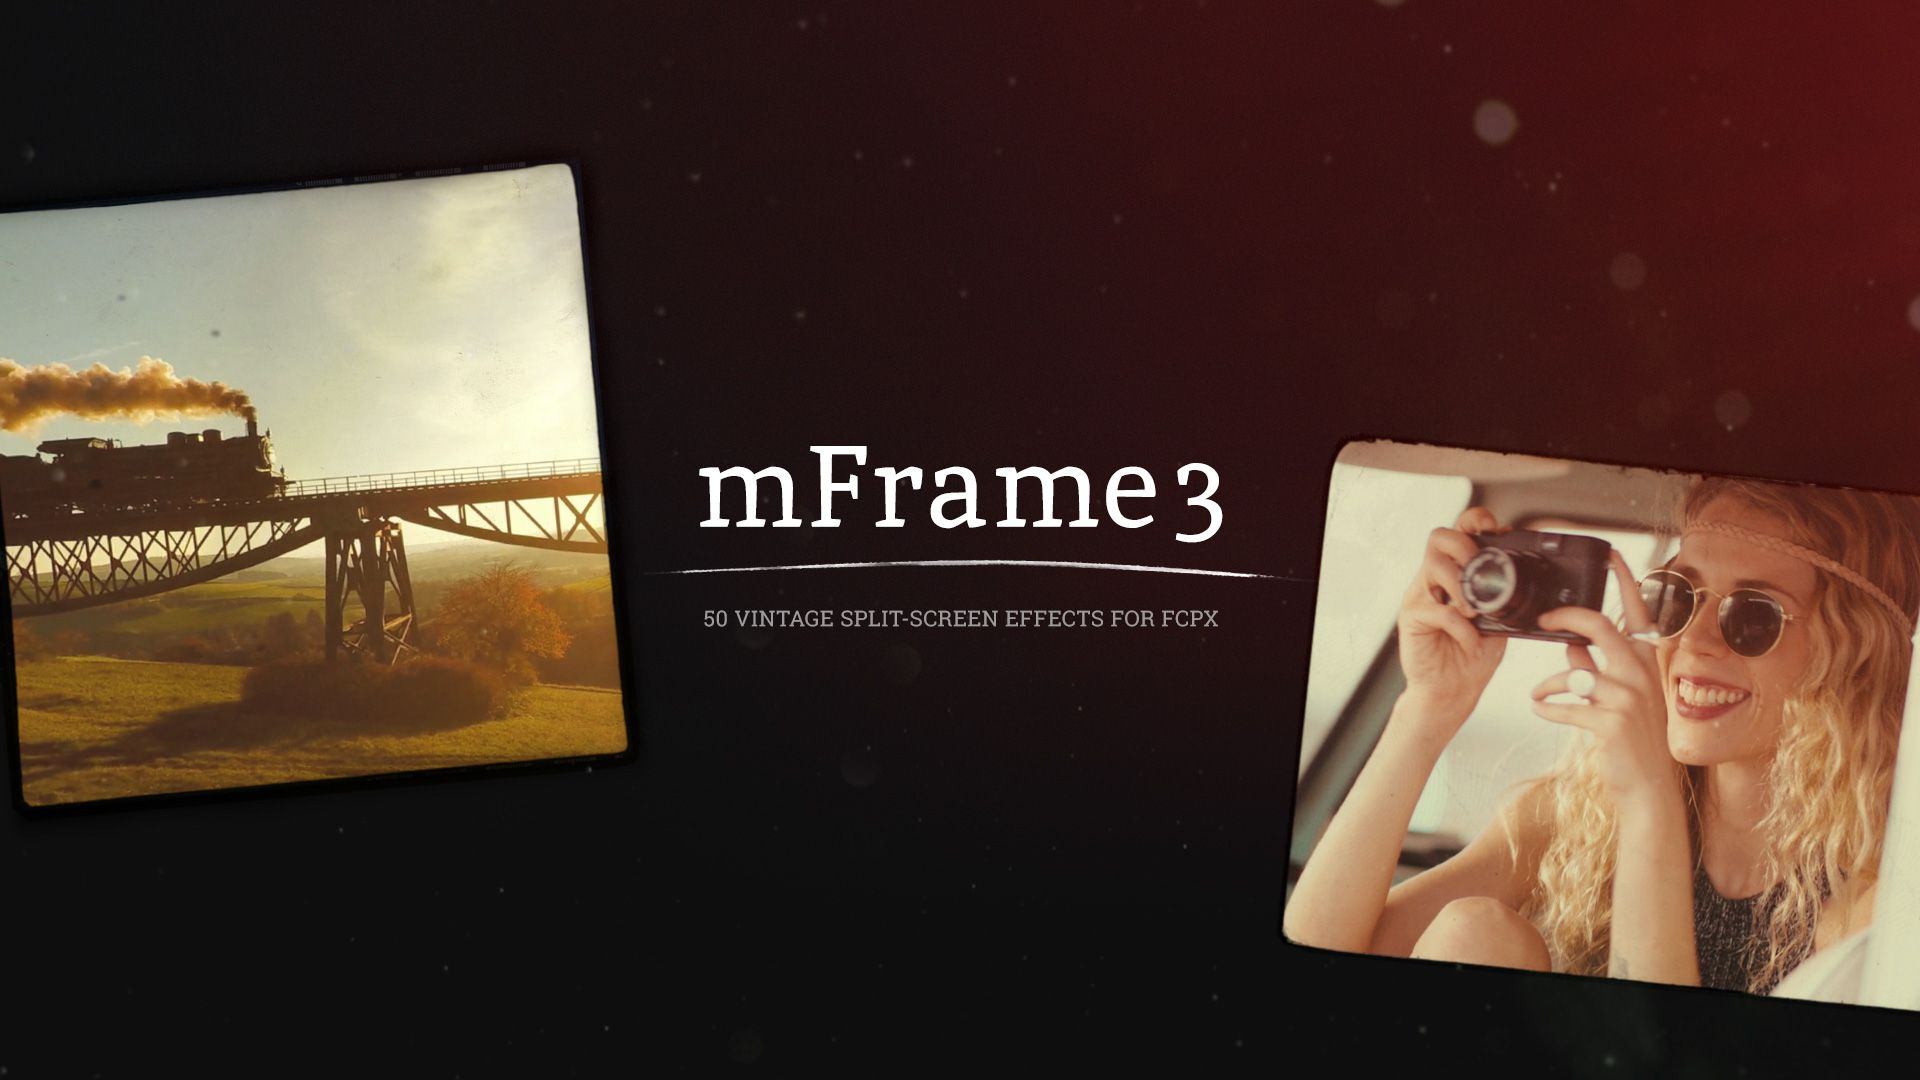 New Fcpx Plugin Introducing Mframe 3 For Finalcutprox Http Bit Ly Mframe3 Videoediting Apple Videoproduction Design Plugins Video Editing Screen